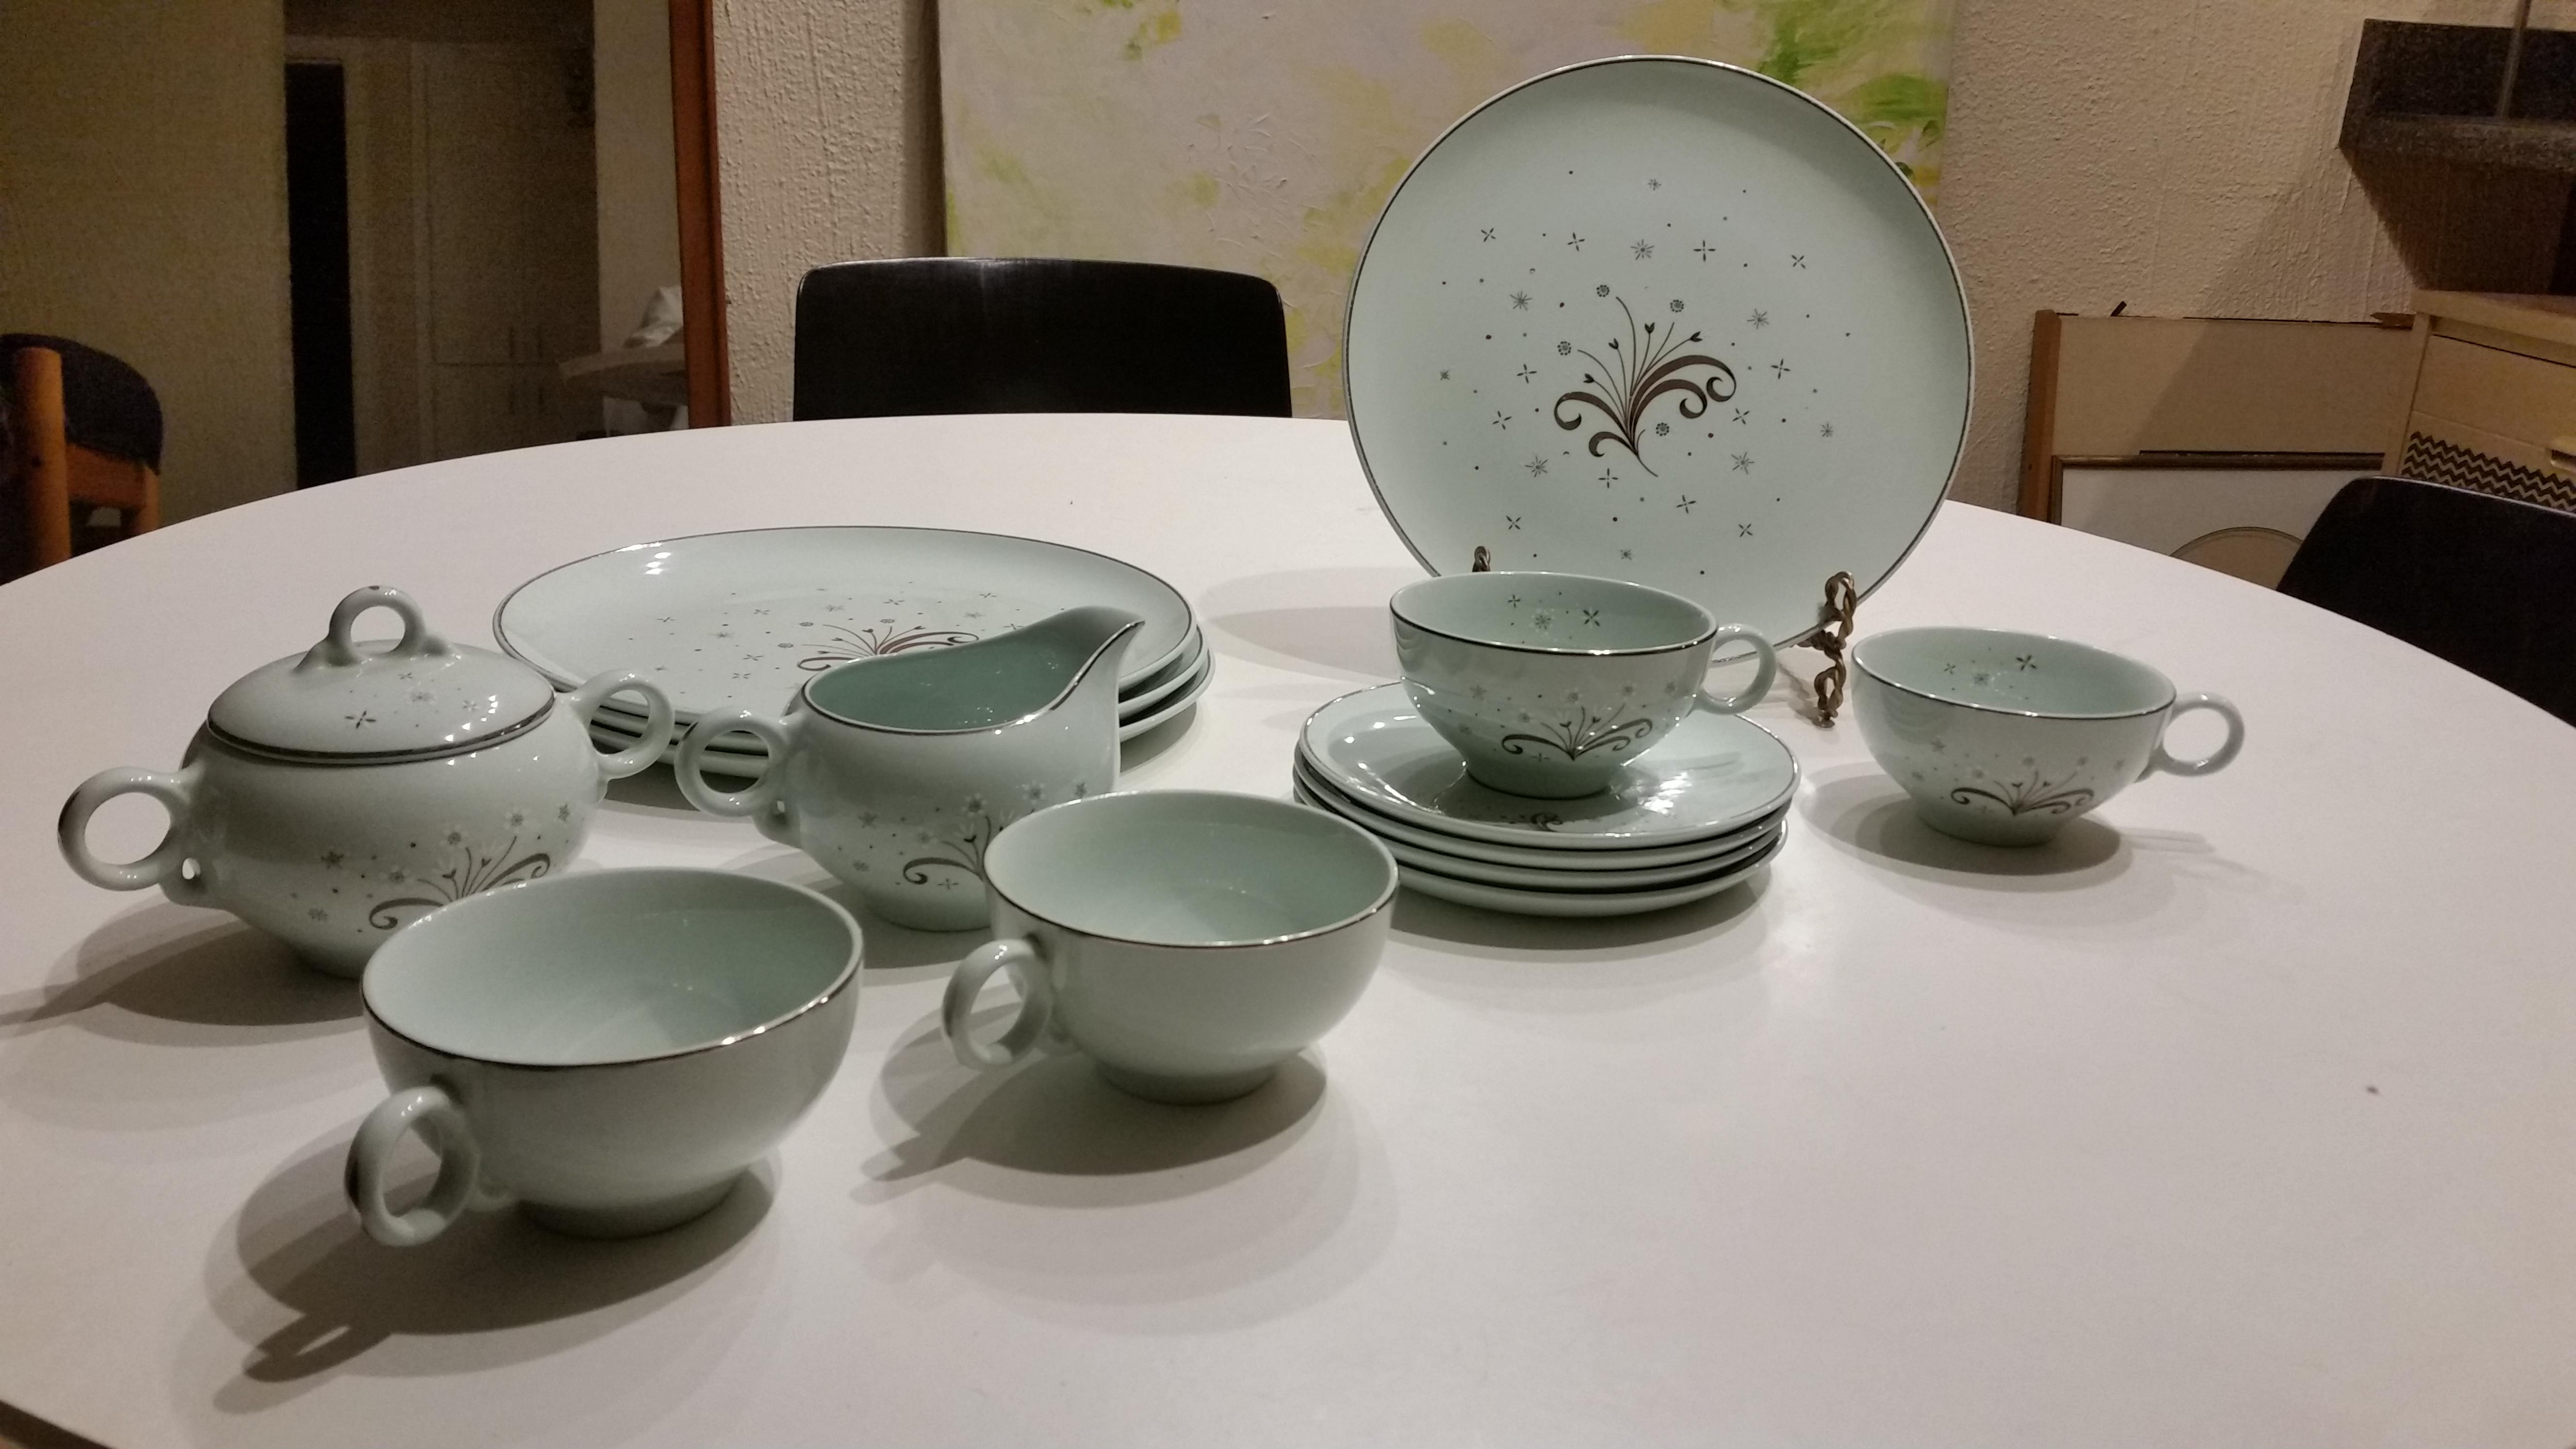 Mid-Century Universal Ballerina Mist China Set - Image 2 of 7  sc 1 st  Chairish & Mid-Century Universal Ballerina Mist China Set | Chairish